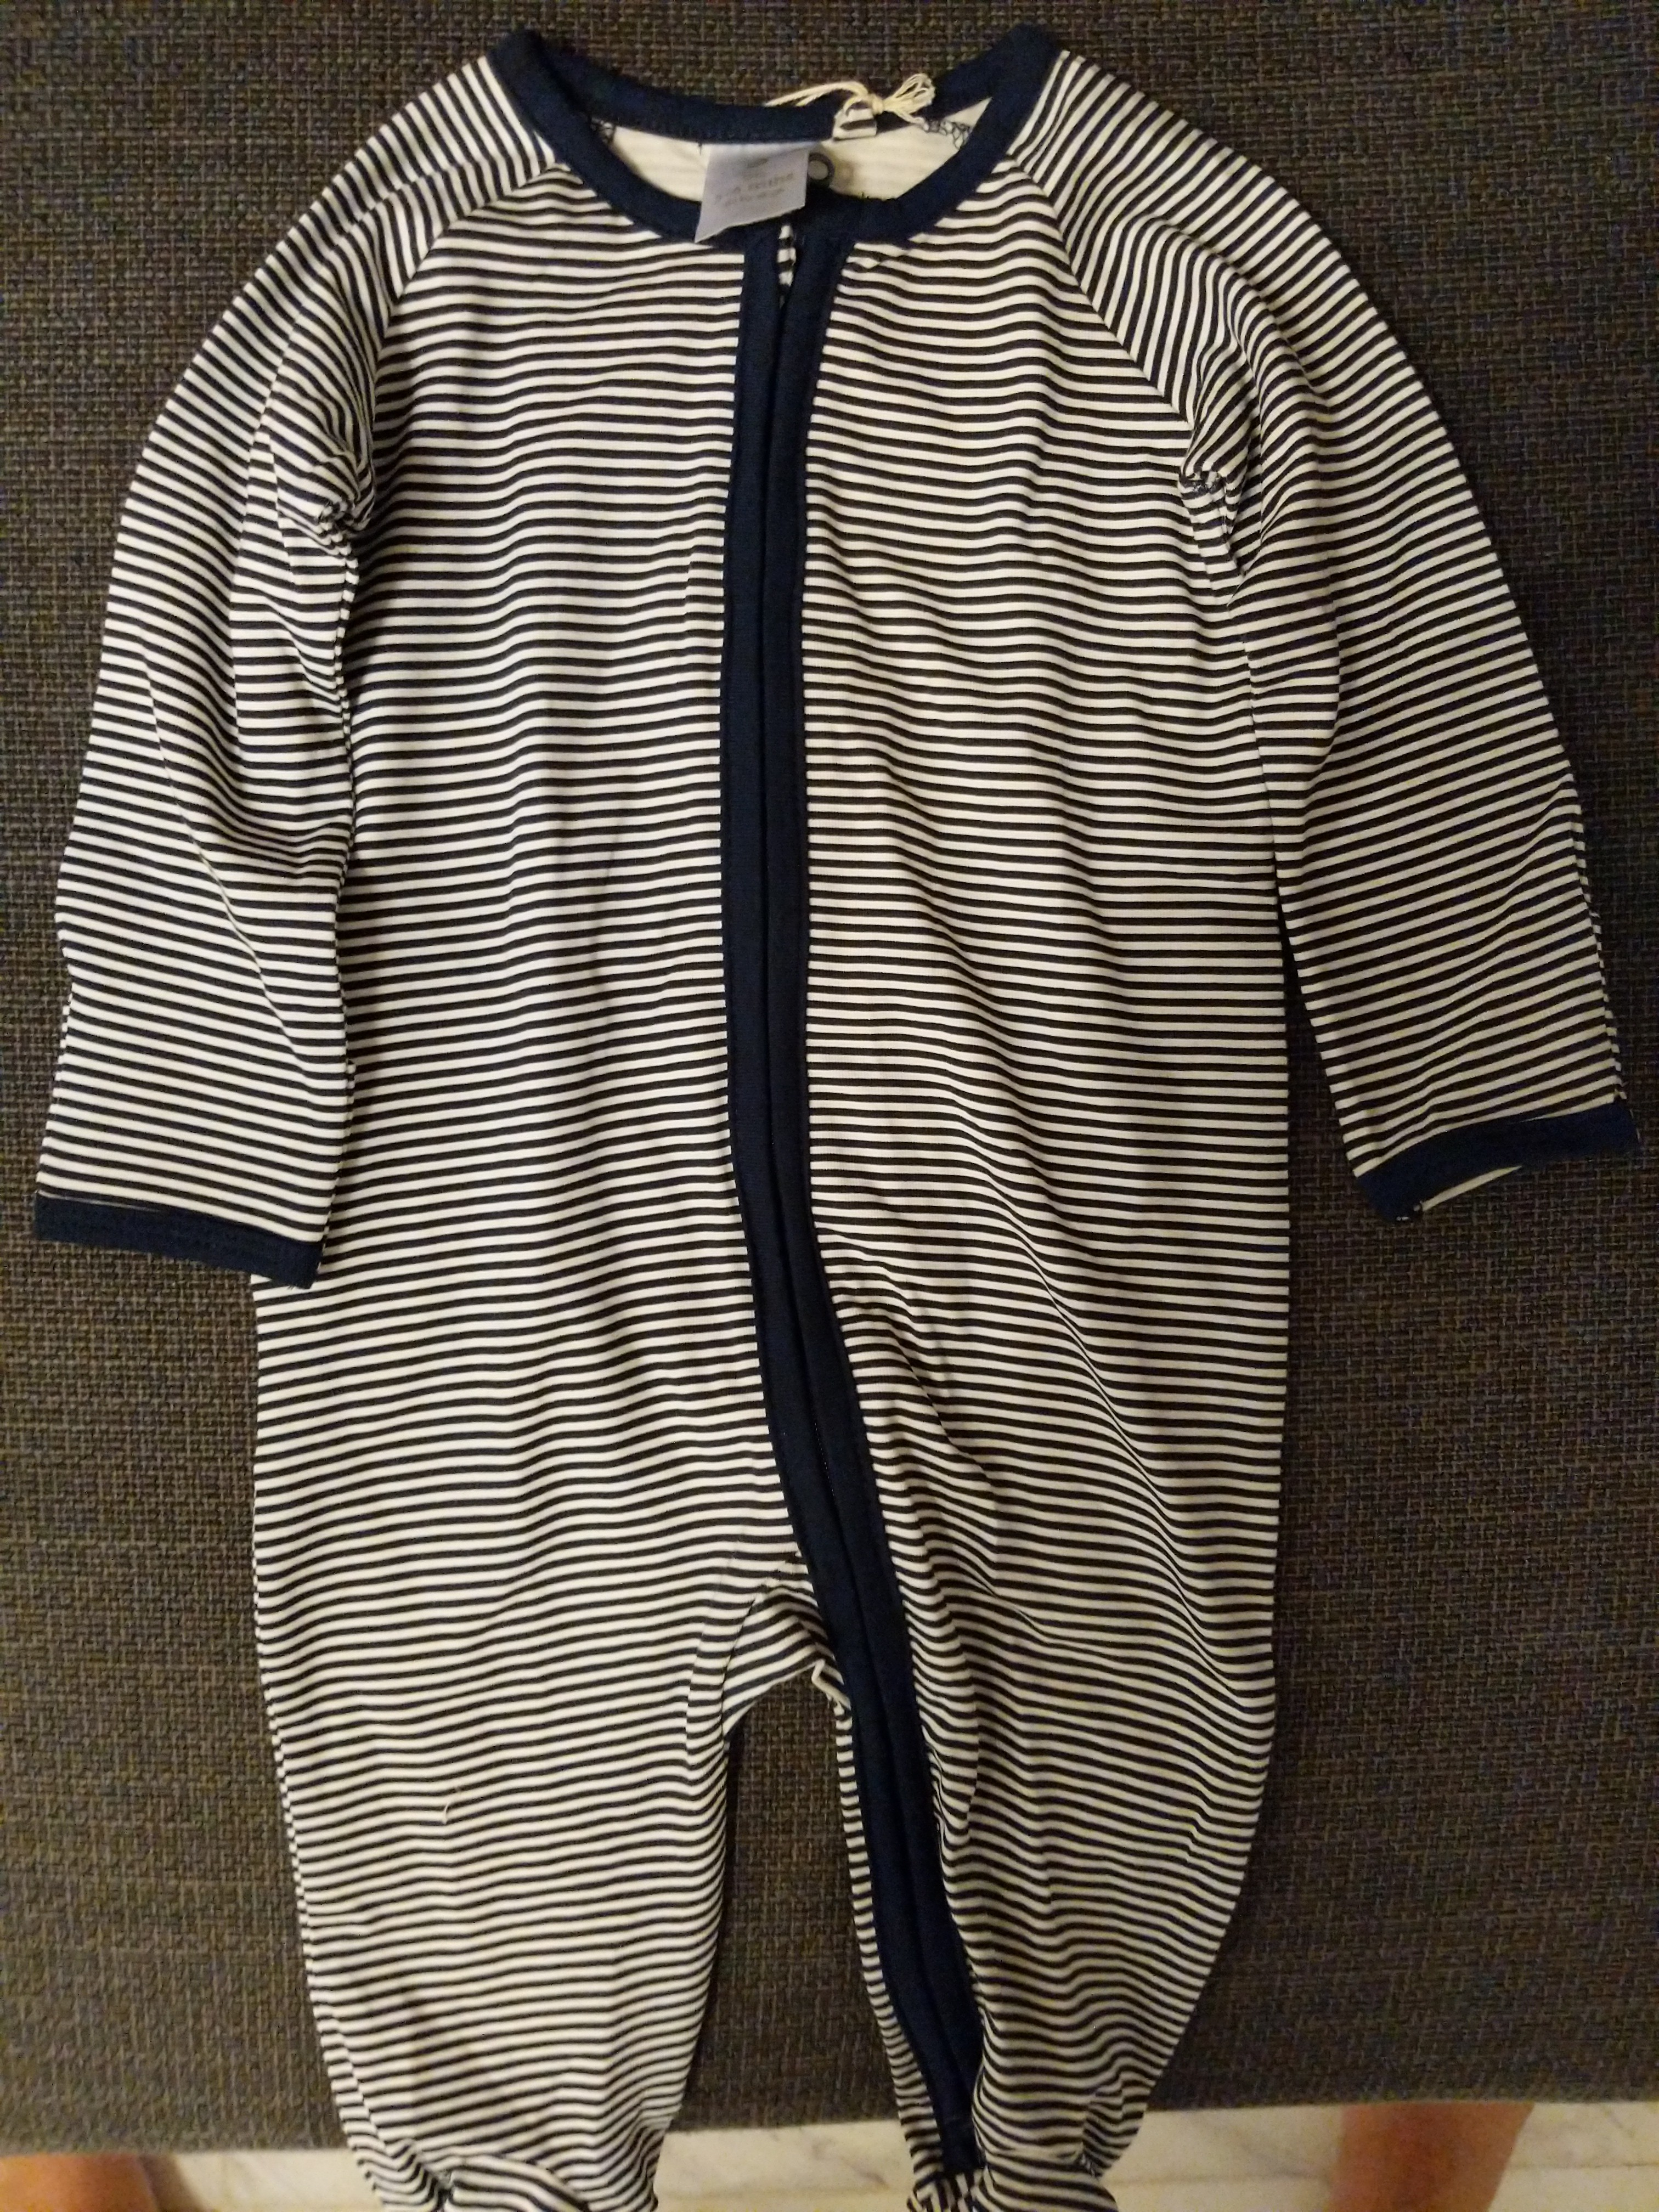 88b5fbb85b99 Clearance! Brand new Target Bodysuit/ Sleepsuit for 3-6 months ...